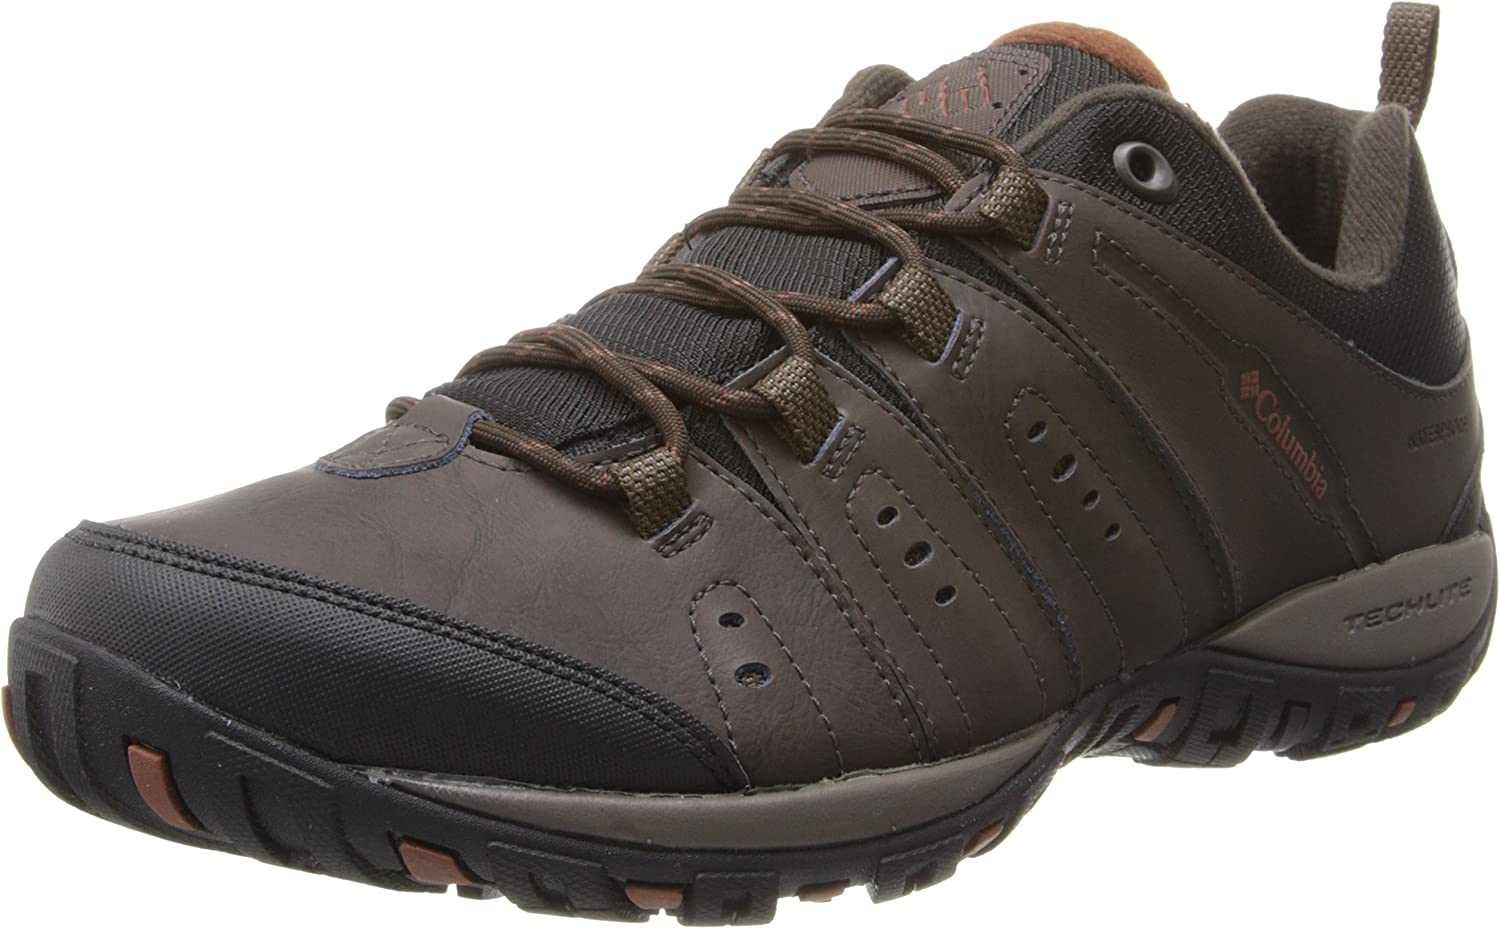 Columbia Peakfreak Nomad Zapatos impermeables para hombre